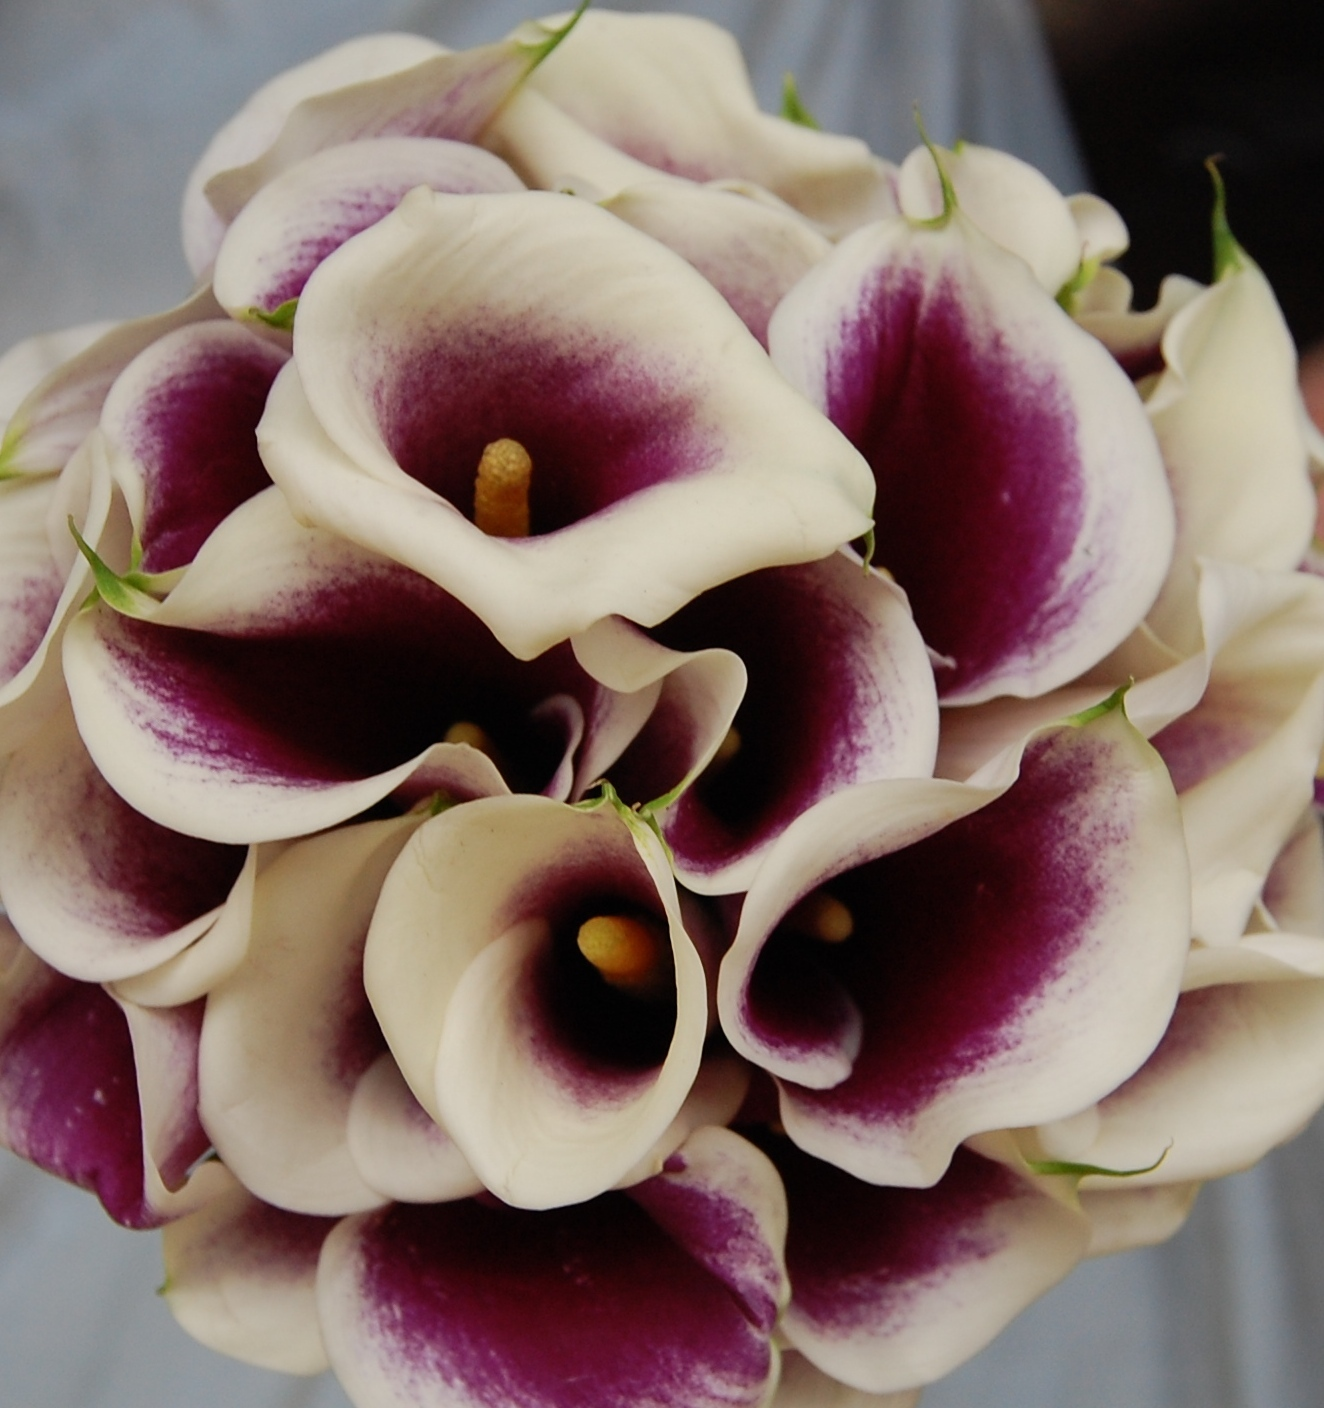 Flowers & Decor, Bridesmaids, Bridesmaids Dresses, Fashion, white, purple, Bride Bouquets, Bridesmaid Bouquets, Flowers, Bouquet, Calla, Bridal, And, Mini, Callas, Monday morning flowers, Picasso, Flower Wedding Dresses